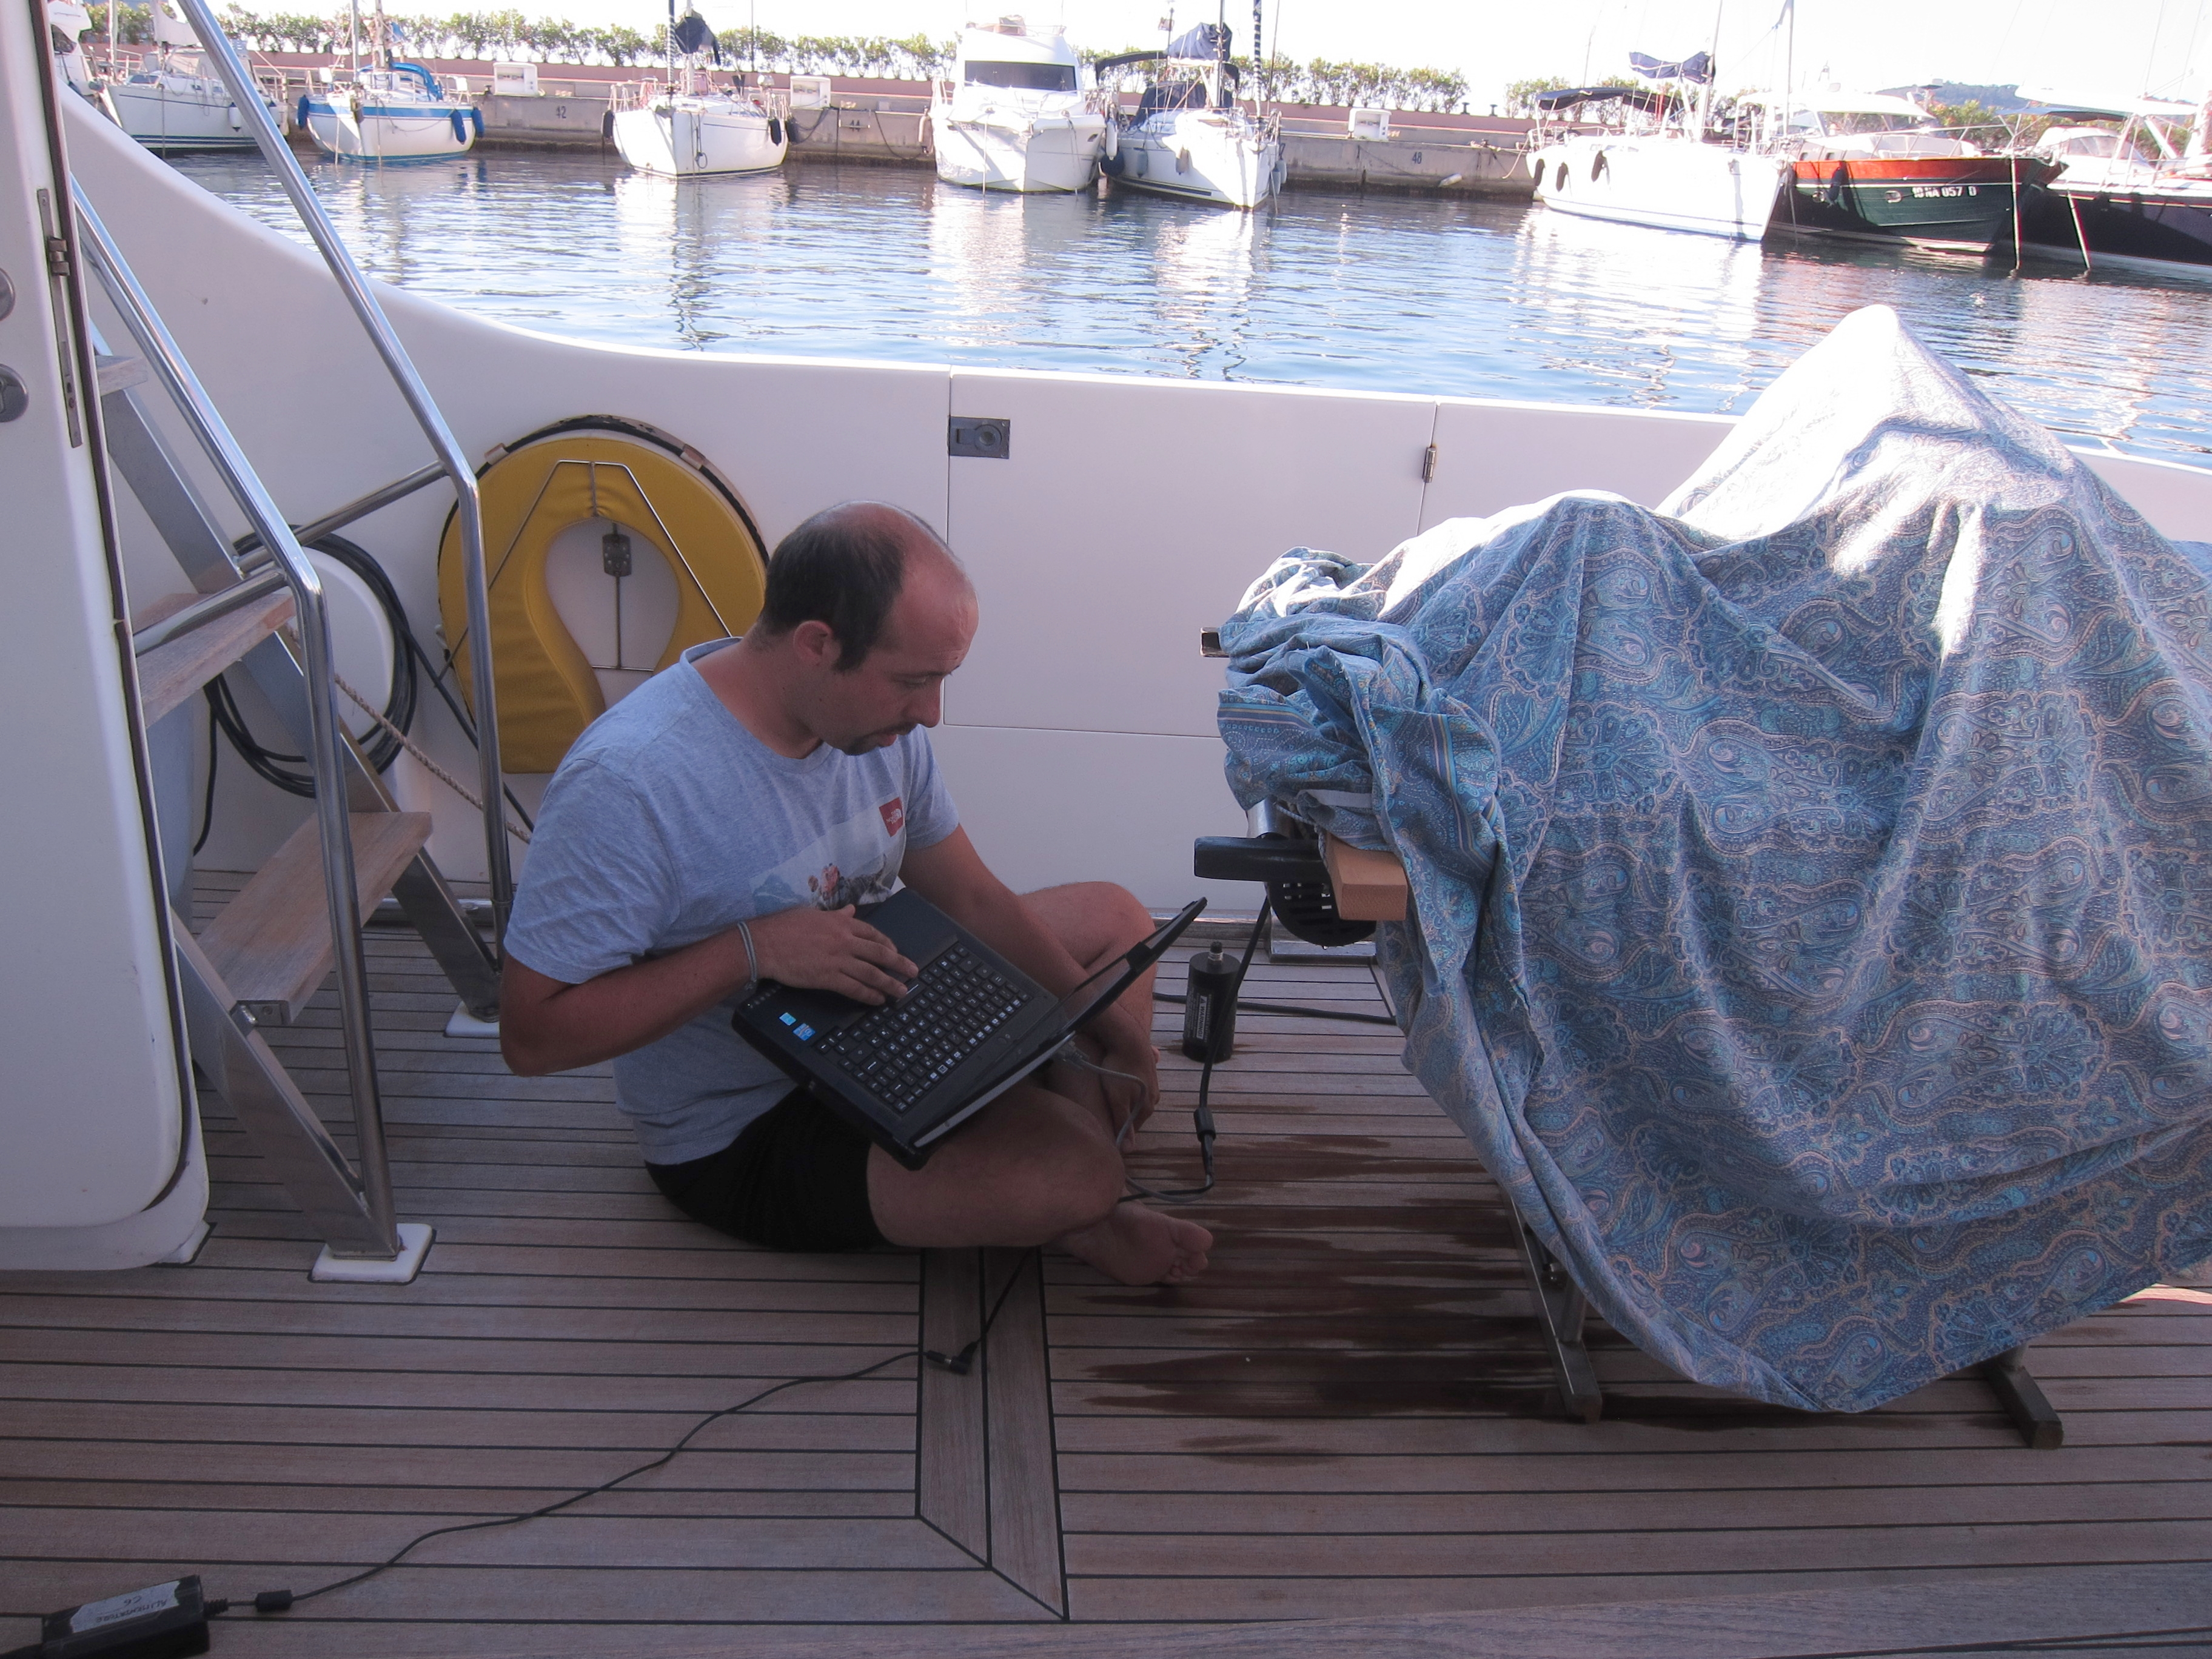 Ligurian 2017 - Researcher at work on the deck